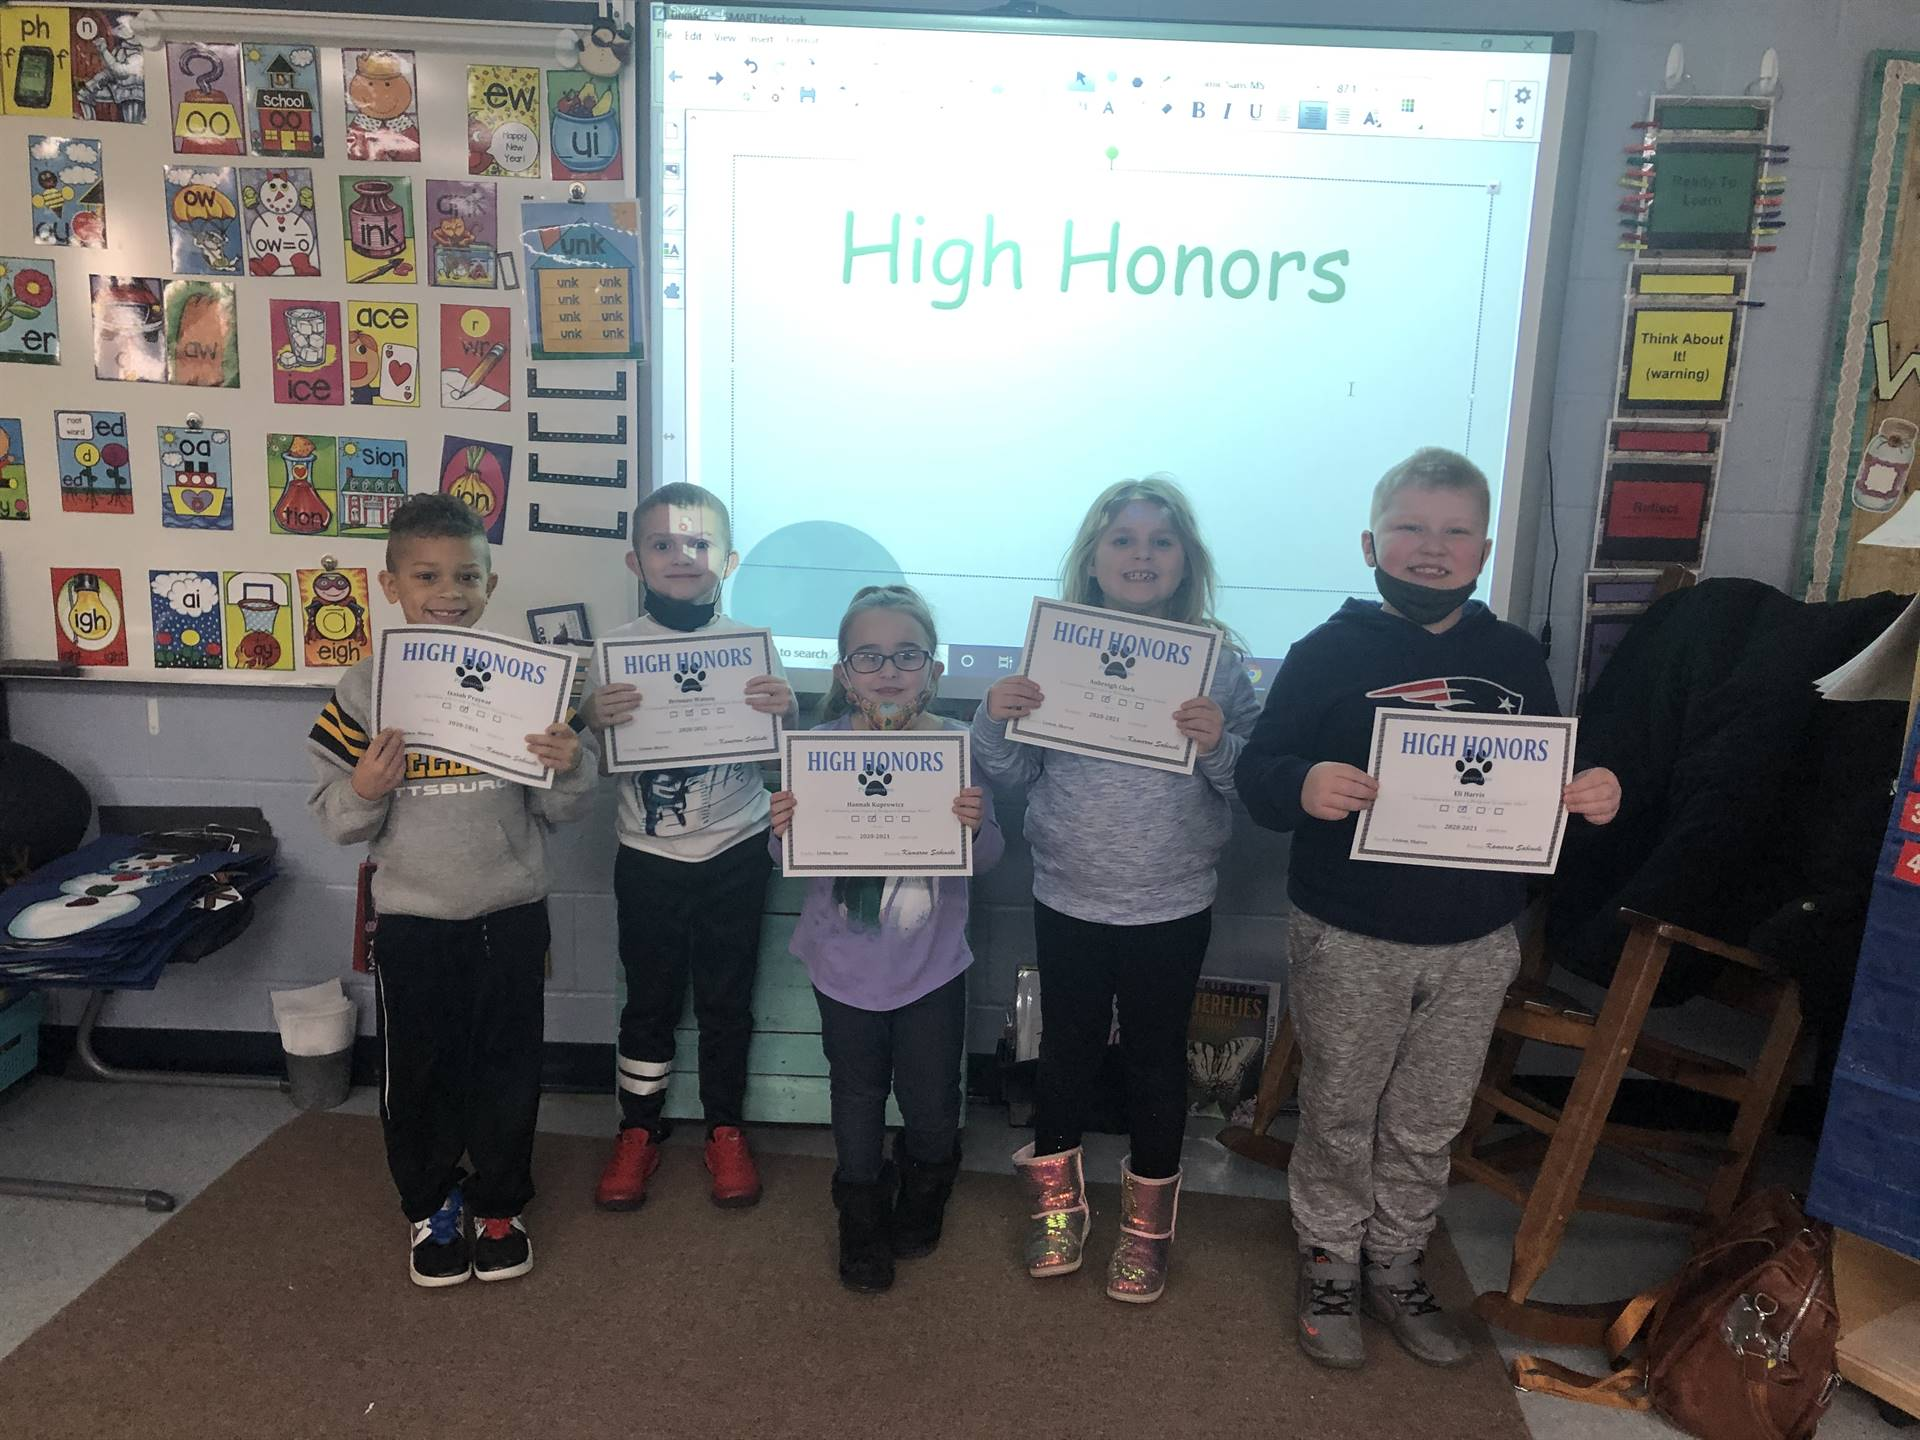 Mrs. Liston's High Honors